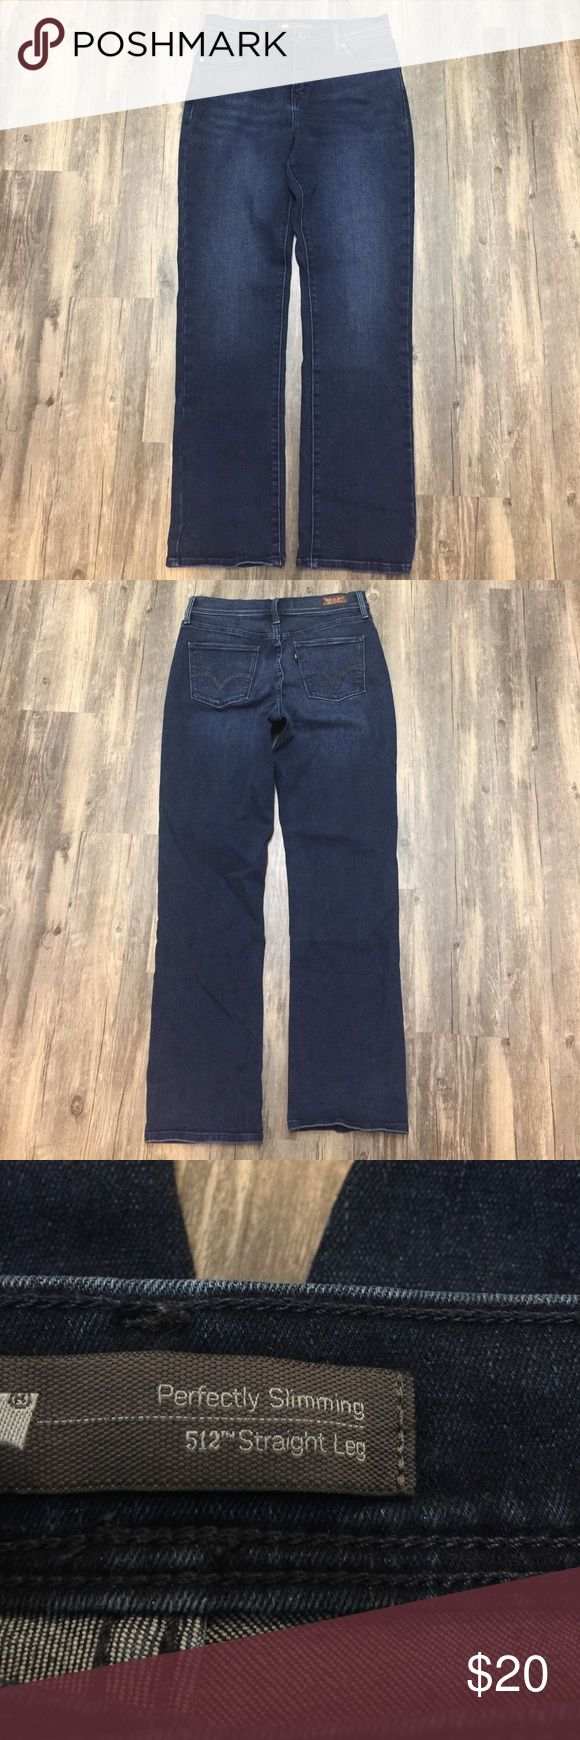 Levi's 512 Perfectly Slimming Straight Leg Jeans Almost new Levi's 512 Perfectly Slimming Straight Leg Jean sz W29 L29. The jeans are in great condition with a unique stitching on the back pockets. Levi's Jeans Straight Leg